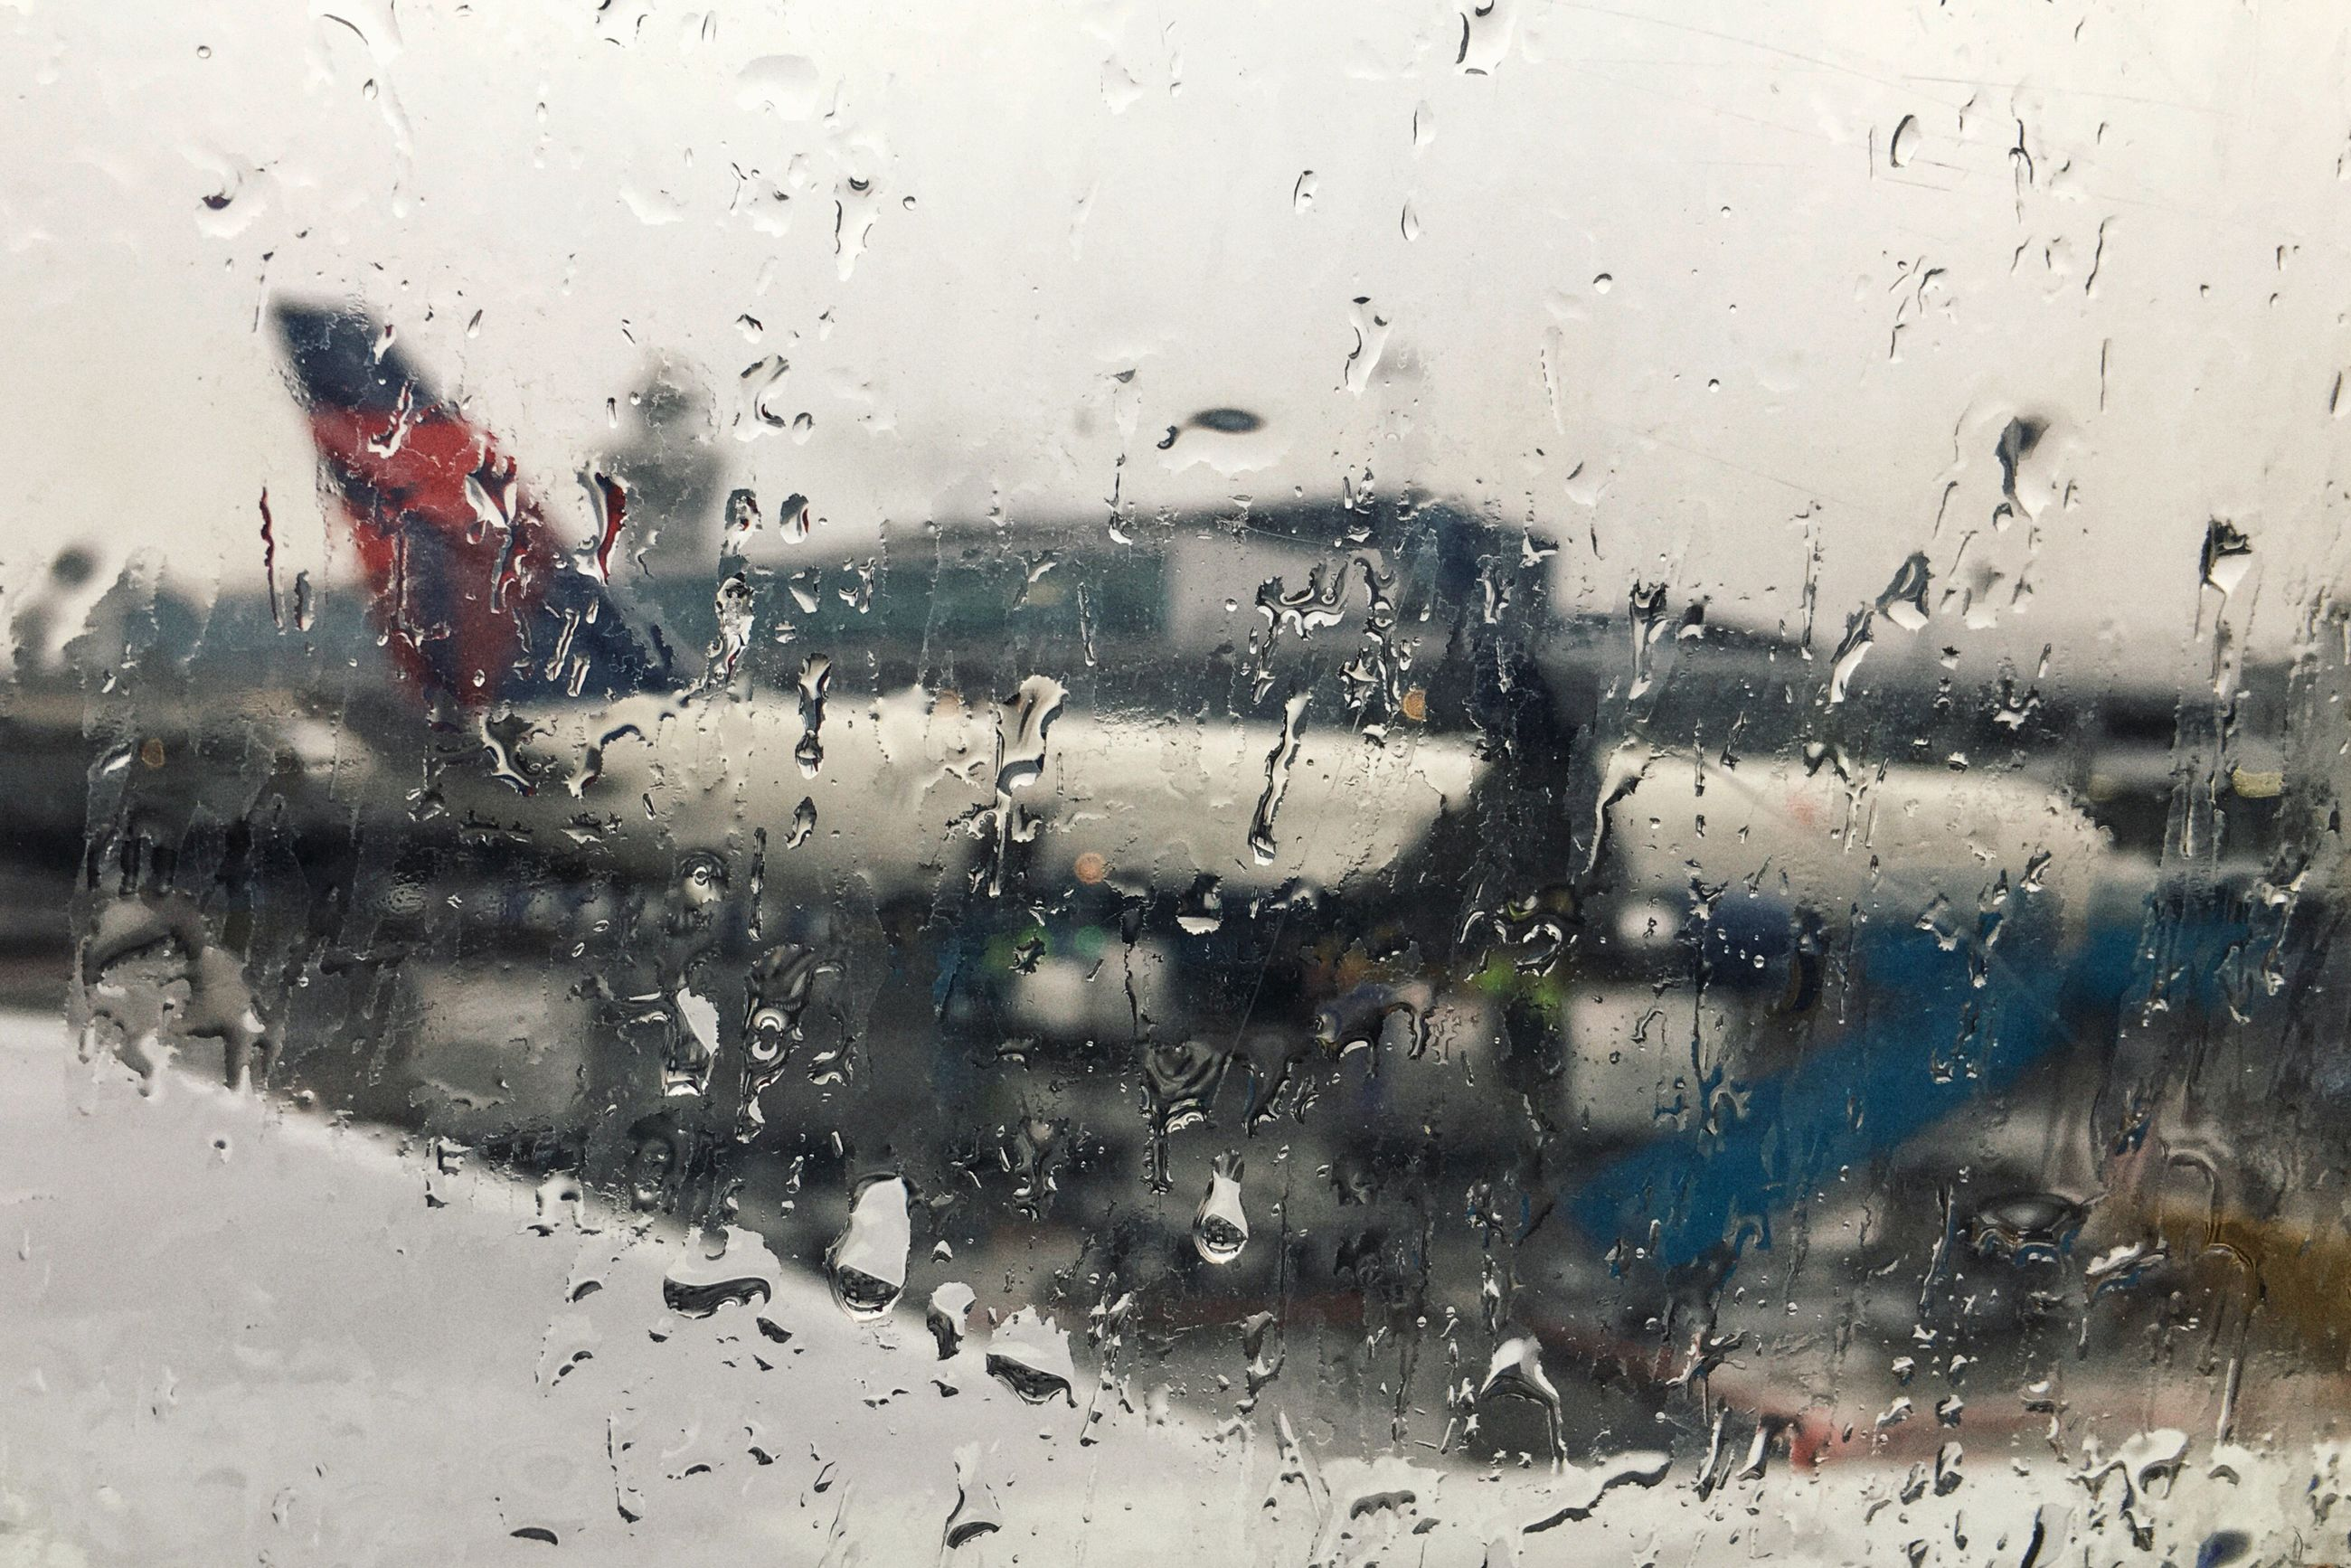 glass - material, window, transparent, wet, water, rain, weather, drop, transportation, car, full frame, mode of transport, vehicle interior, backgrounds, day, rainy season, land vehicle, sky, no people, close-up, nature, raindrop, indoors